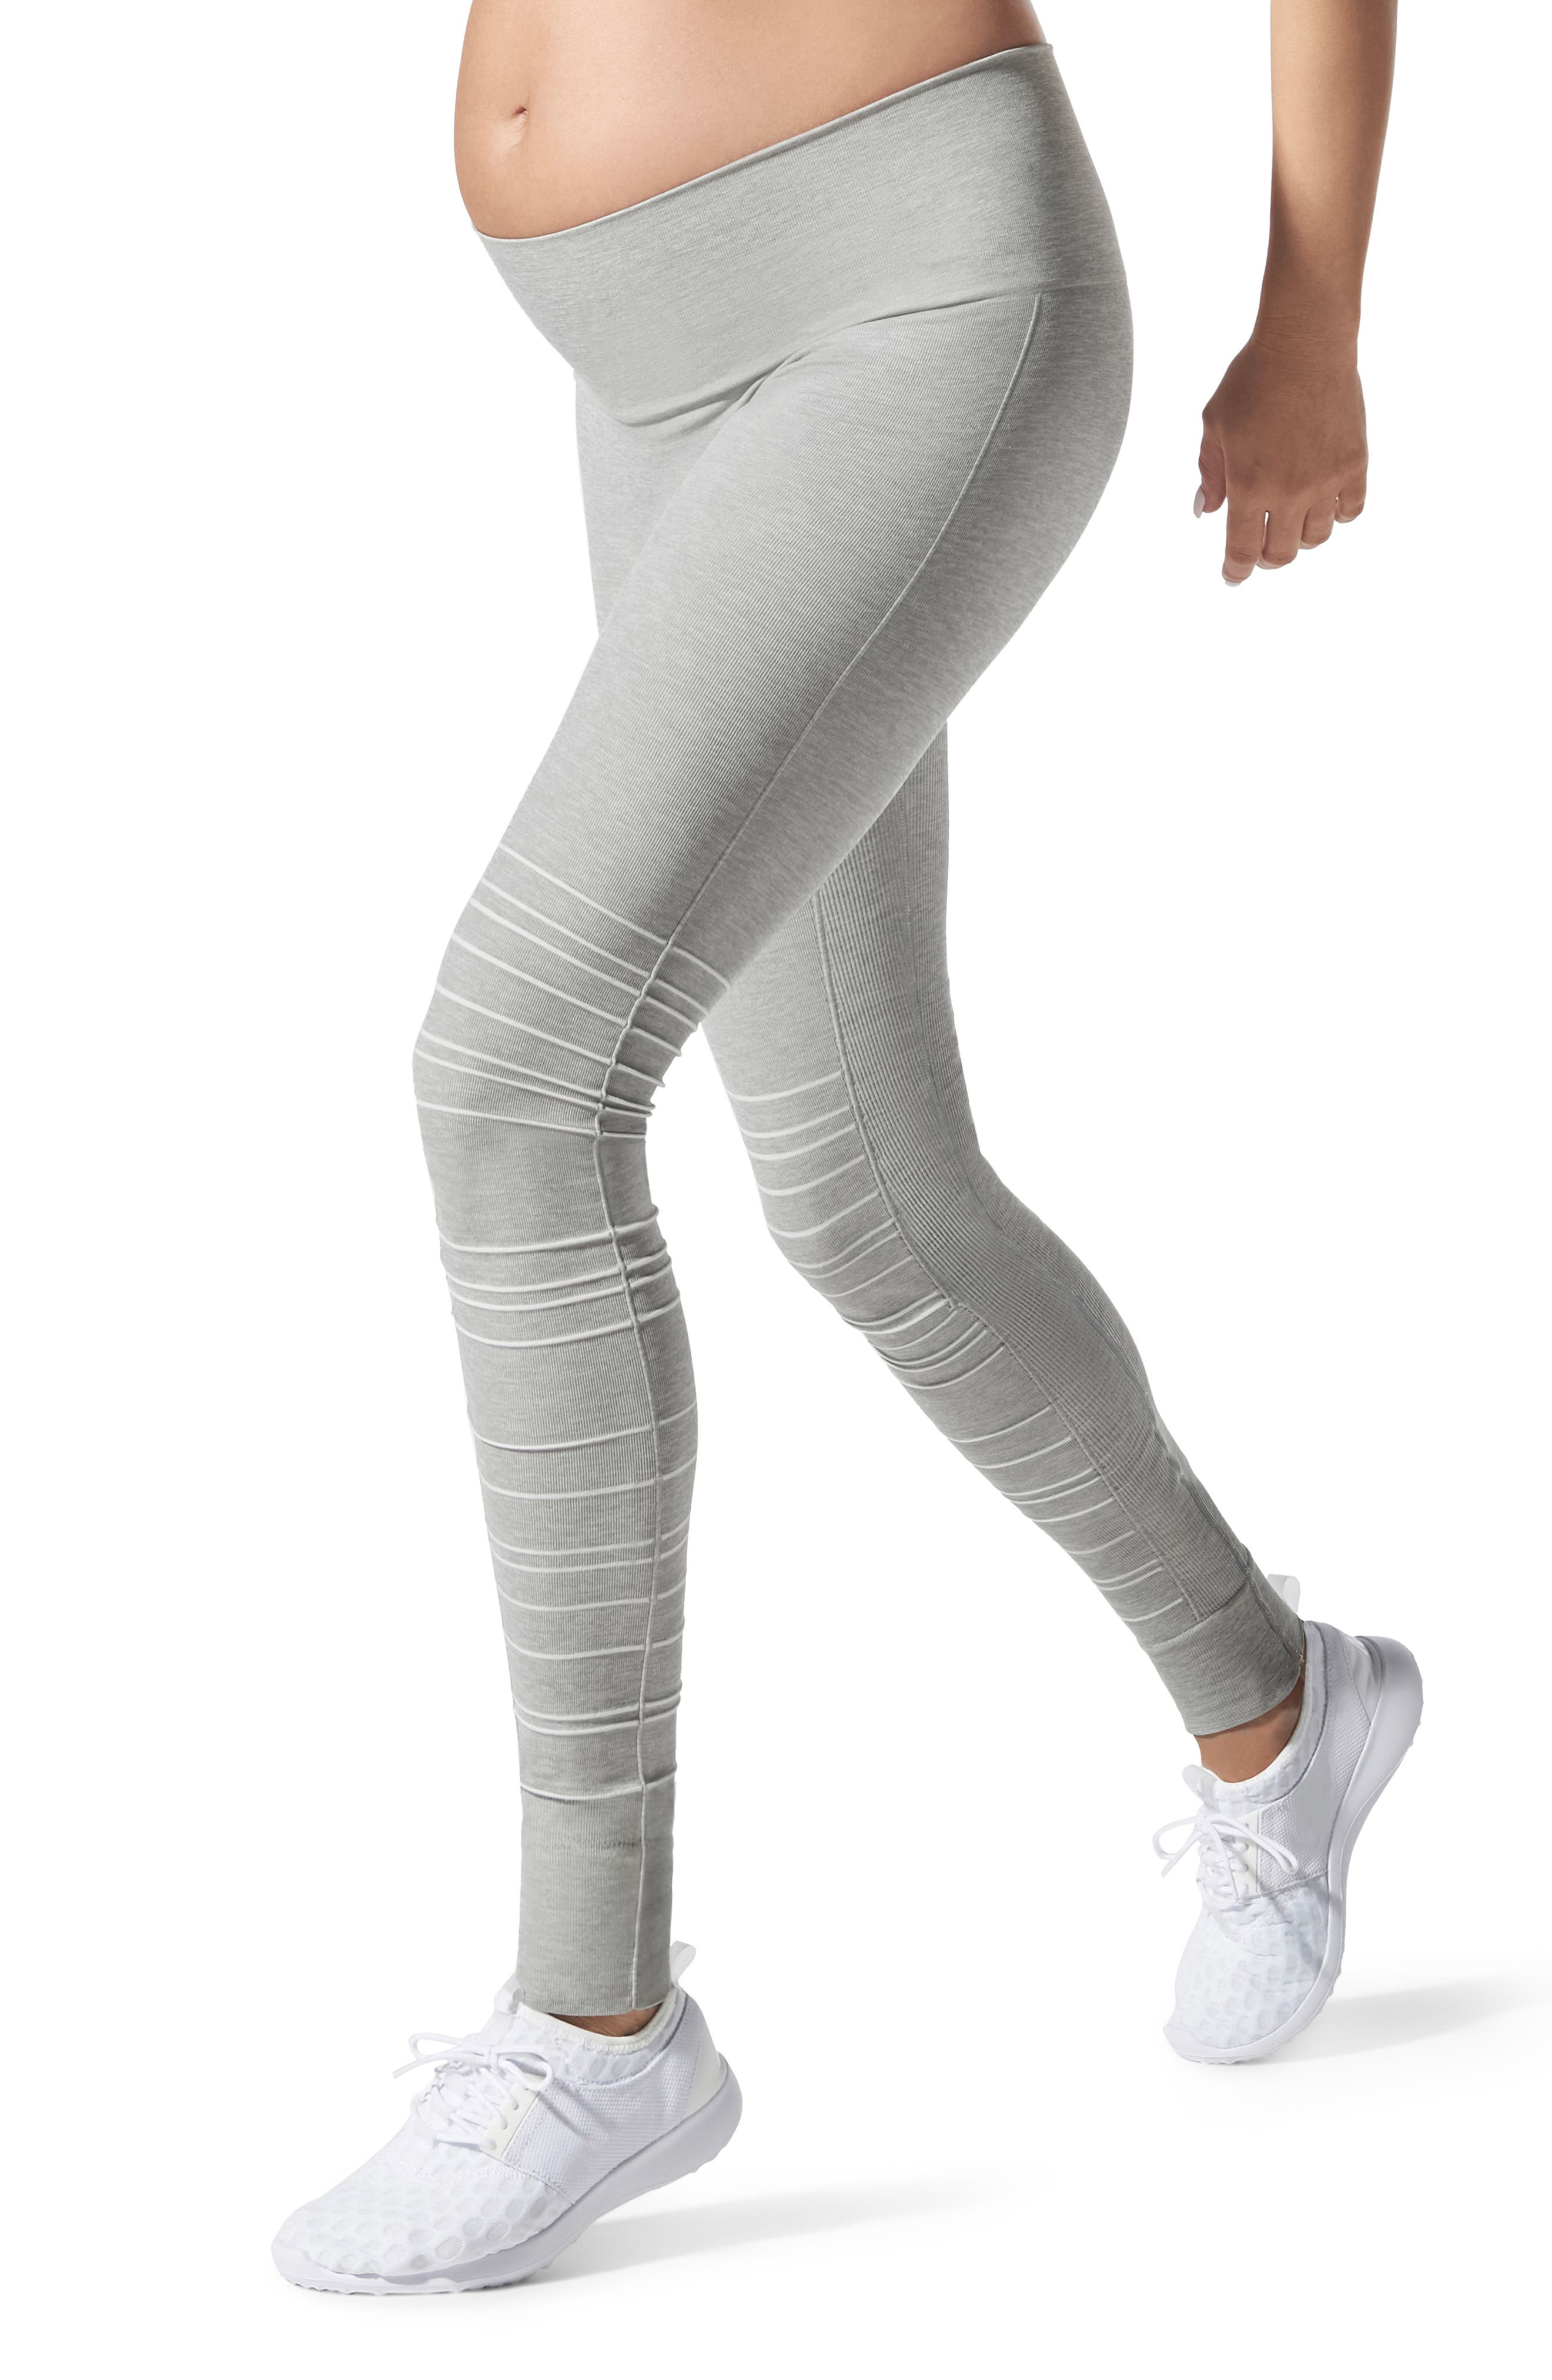 SportSupport<sup>®</sup> Hipster Cuffed Support Maternity/Postpartum Leggings,                             Main thumbnail 1, color,                             DOVE GREY